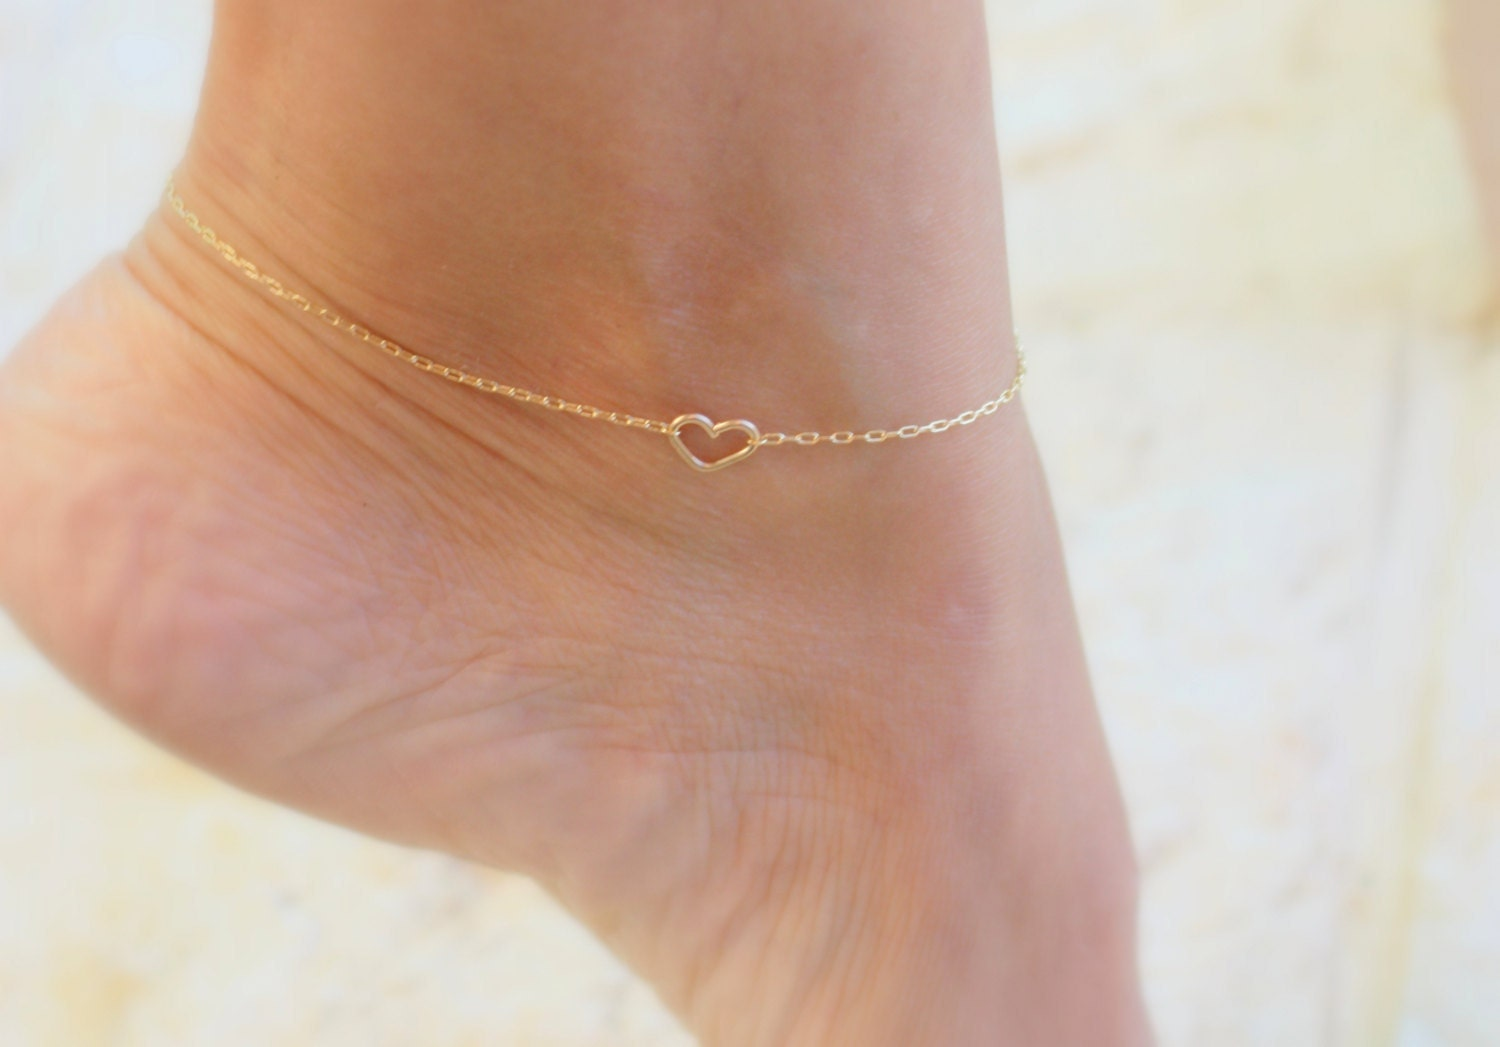 strap britanny enposh anklet heels ankle diamante gold products rose